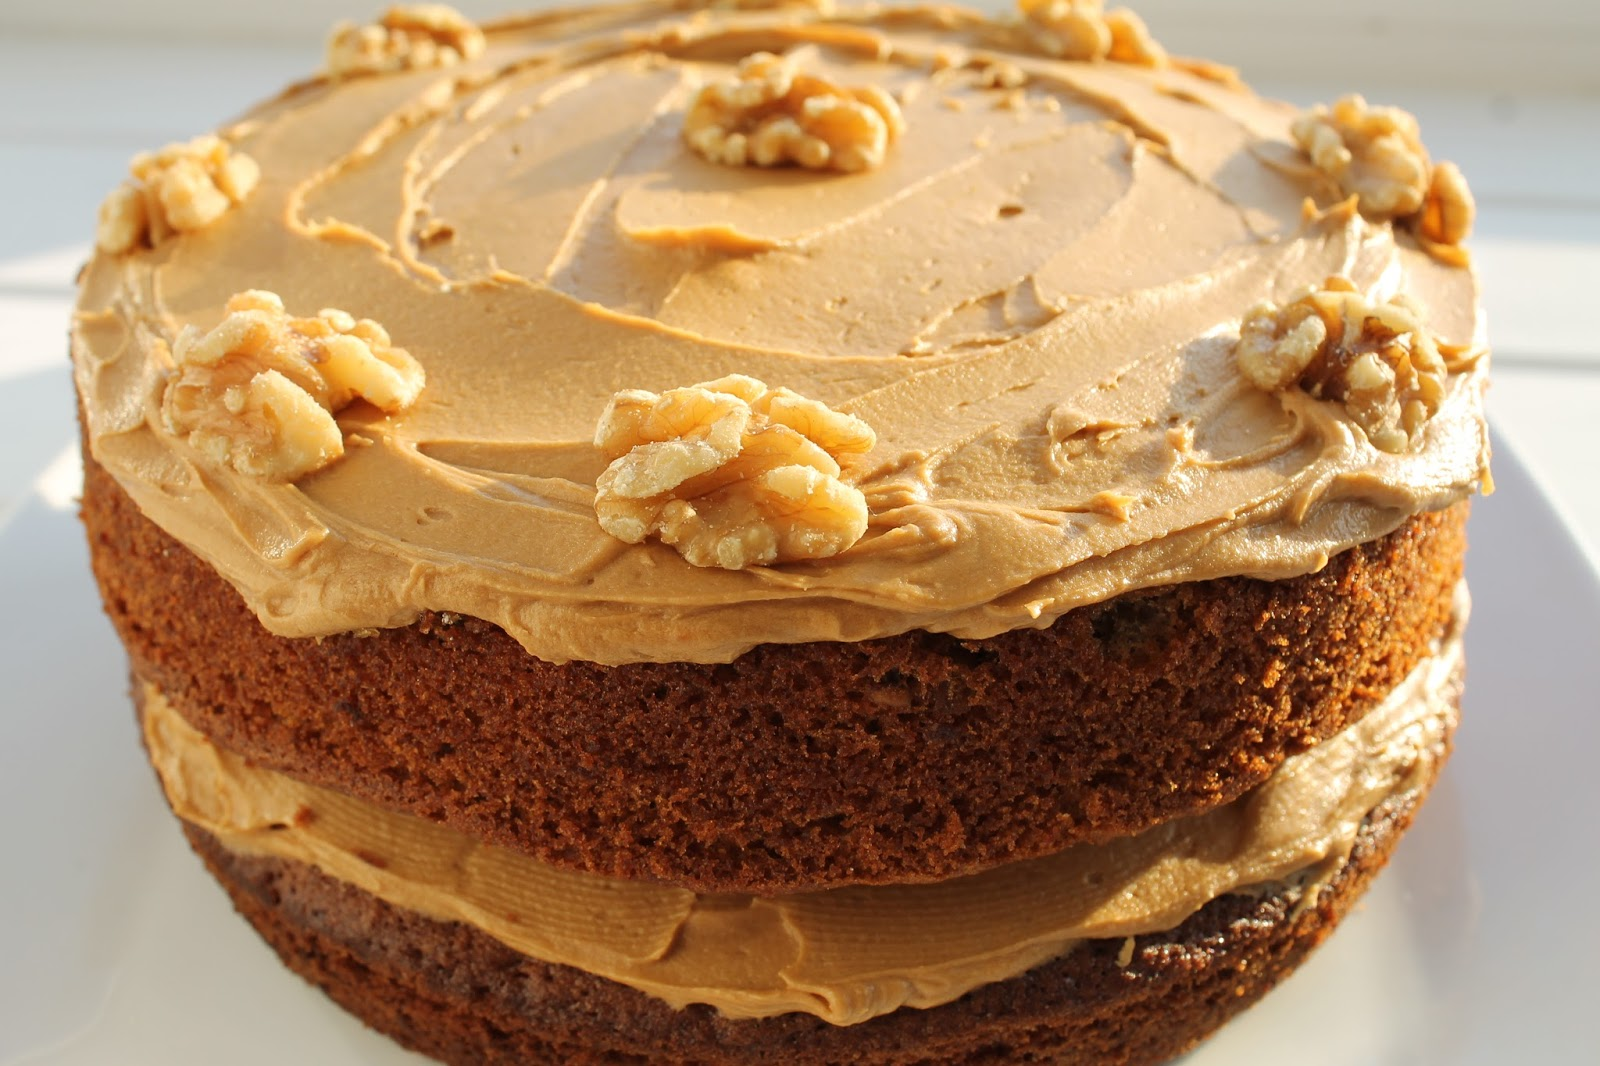 How To Make Coffee And Wallnut Cake